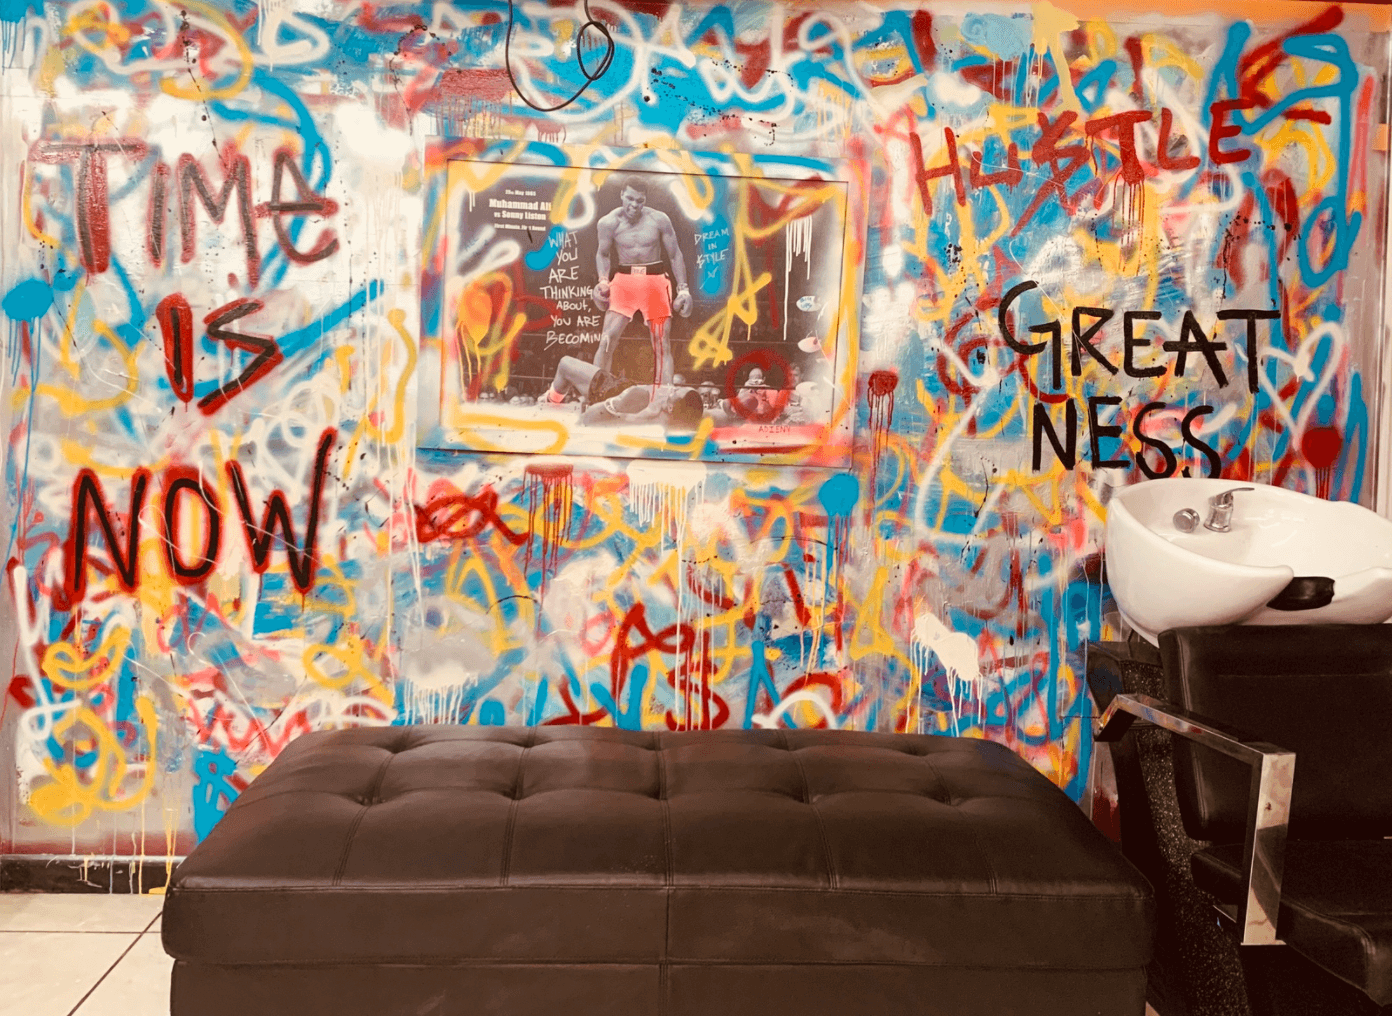 Abstract Mural by Adieny Nuñez